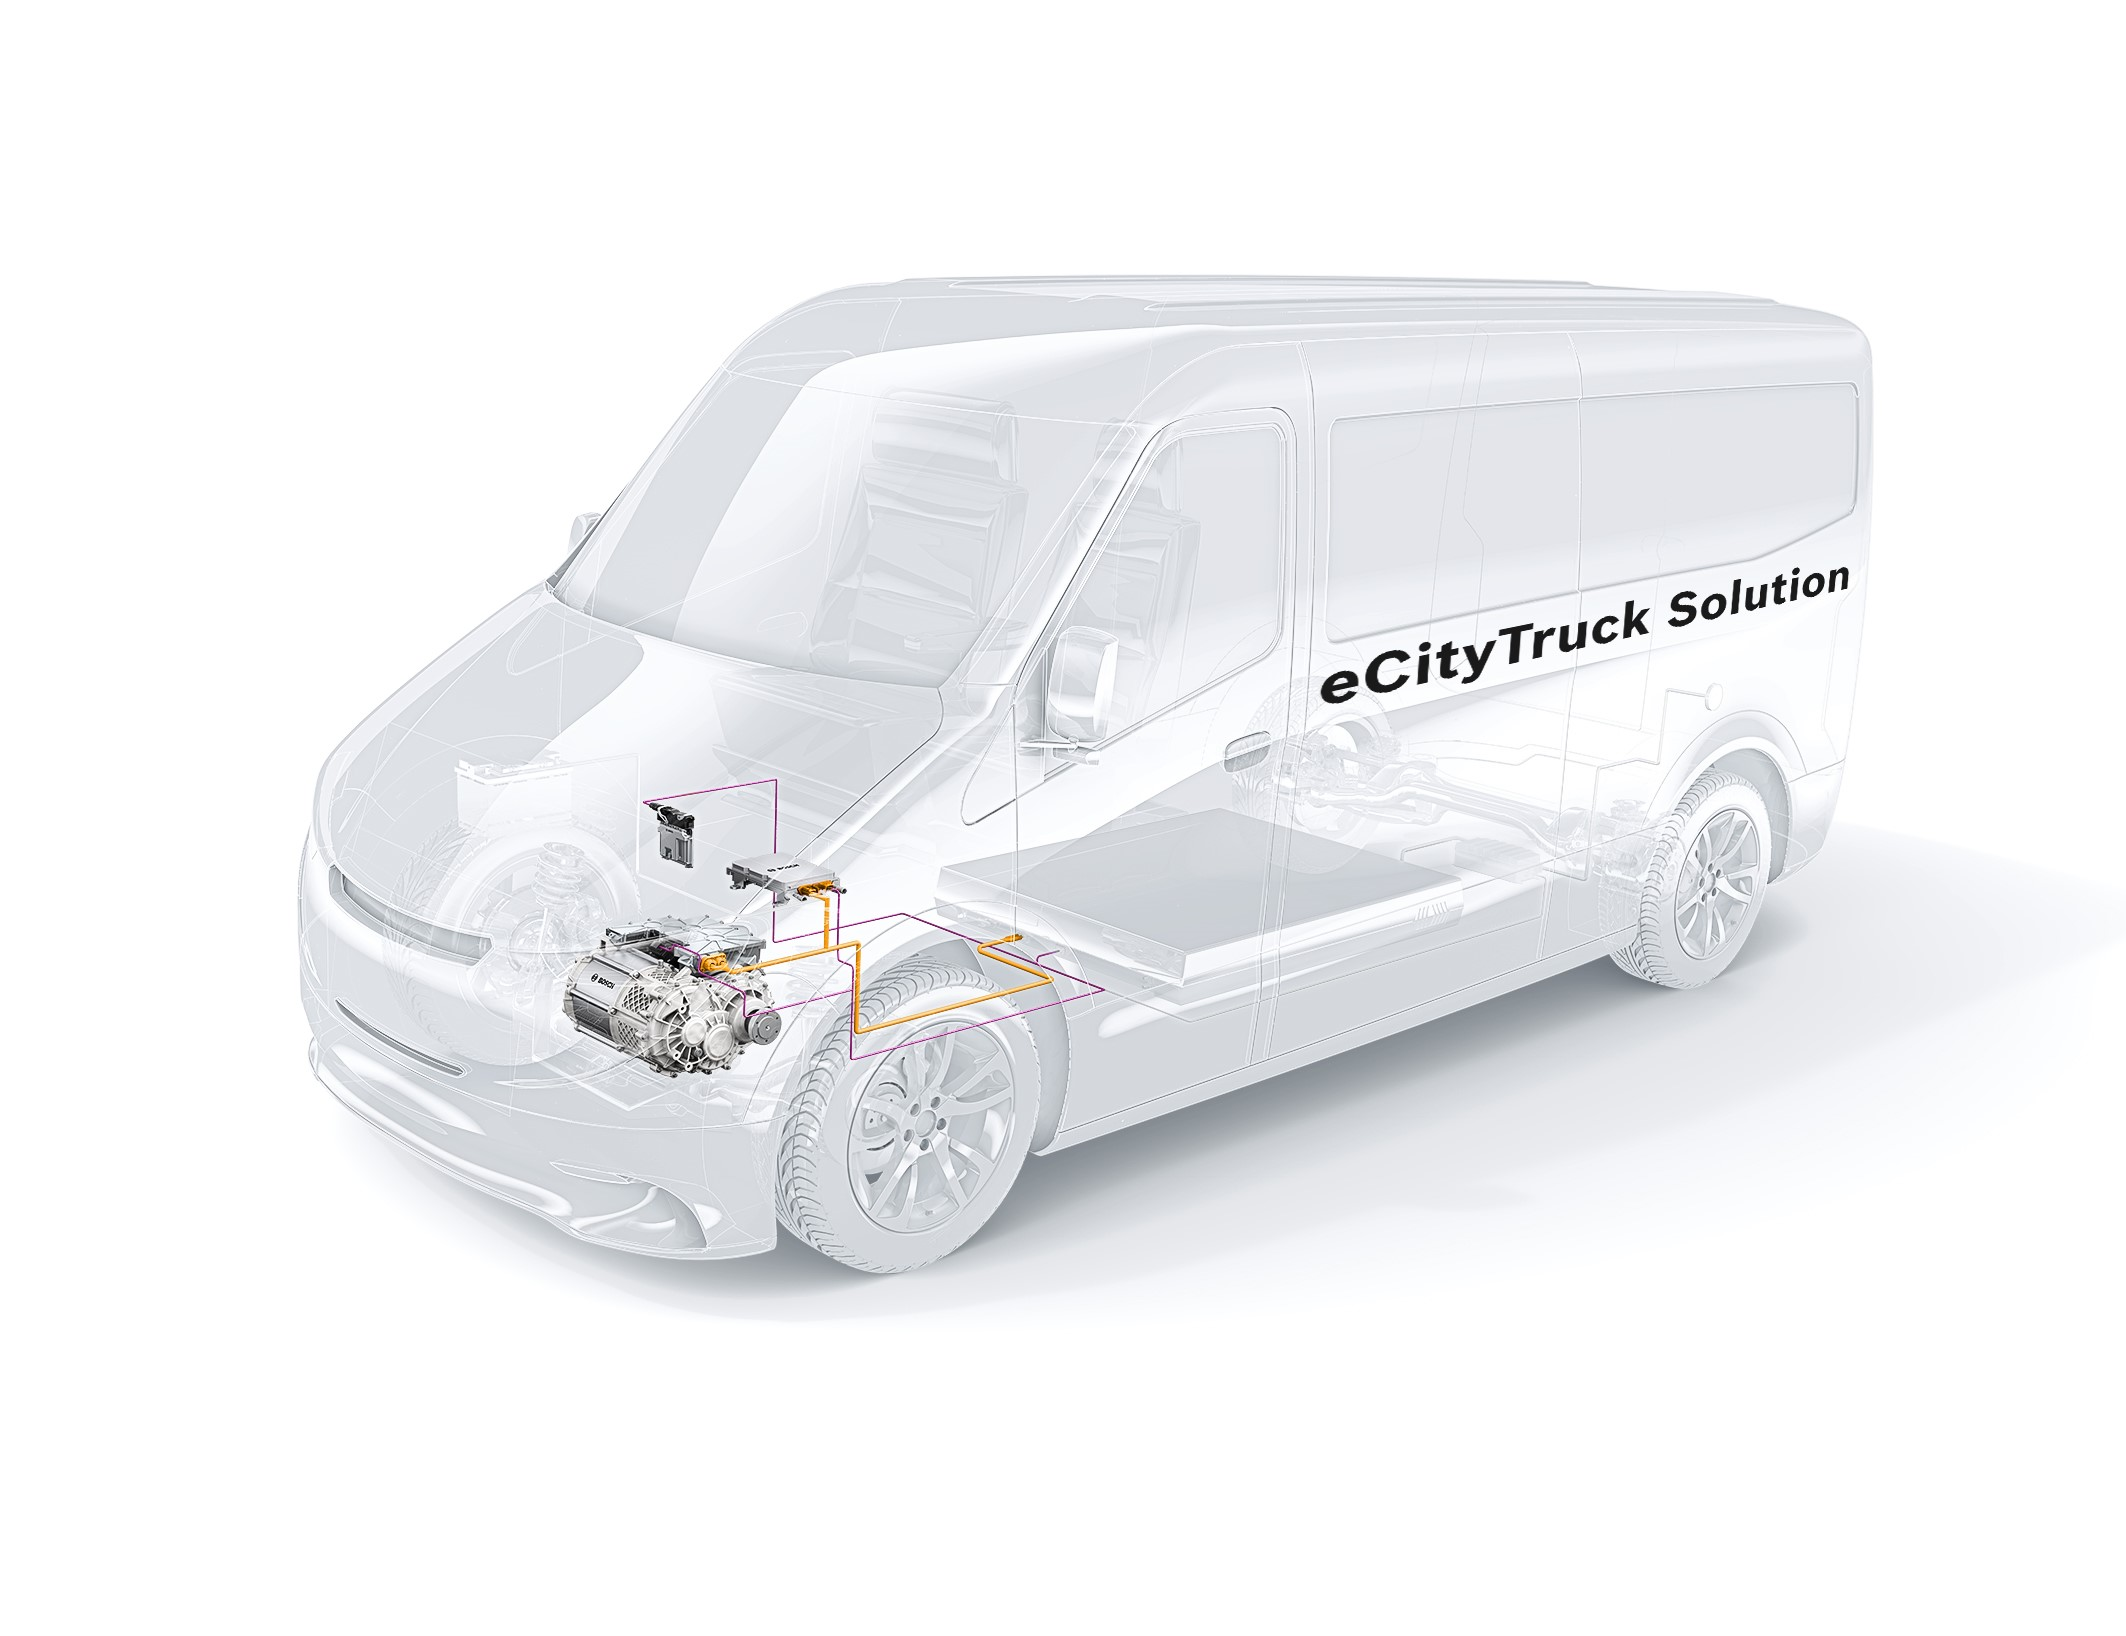 Powertrain solutions for commercial vehicles